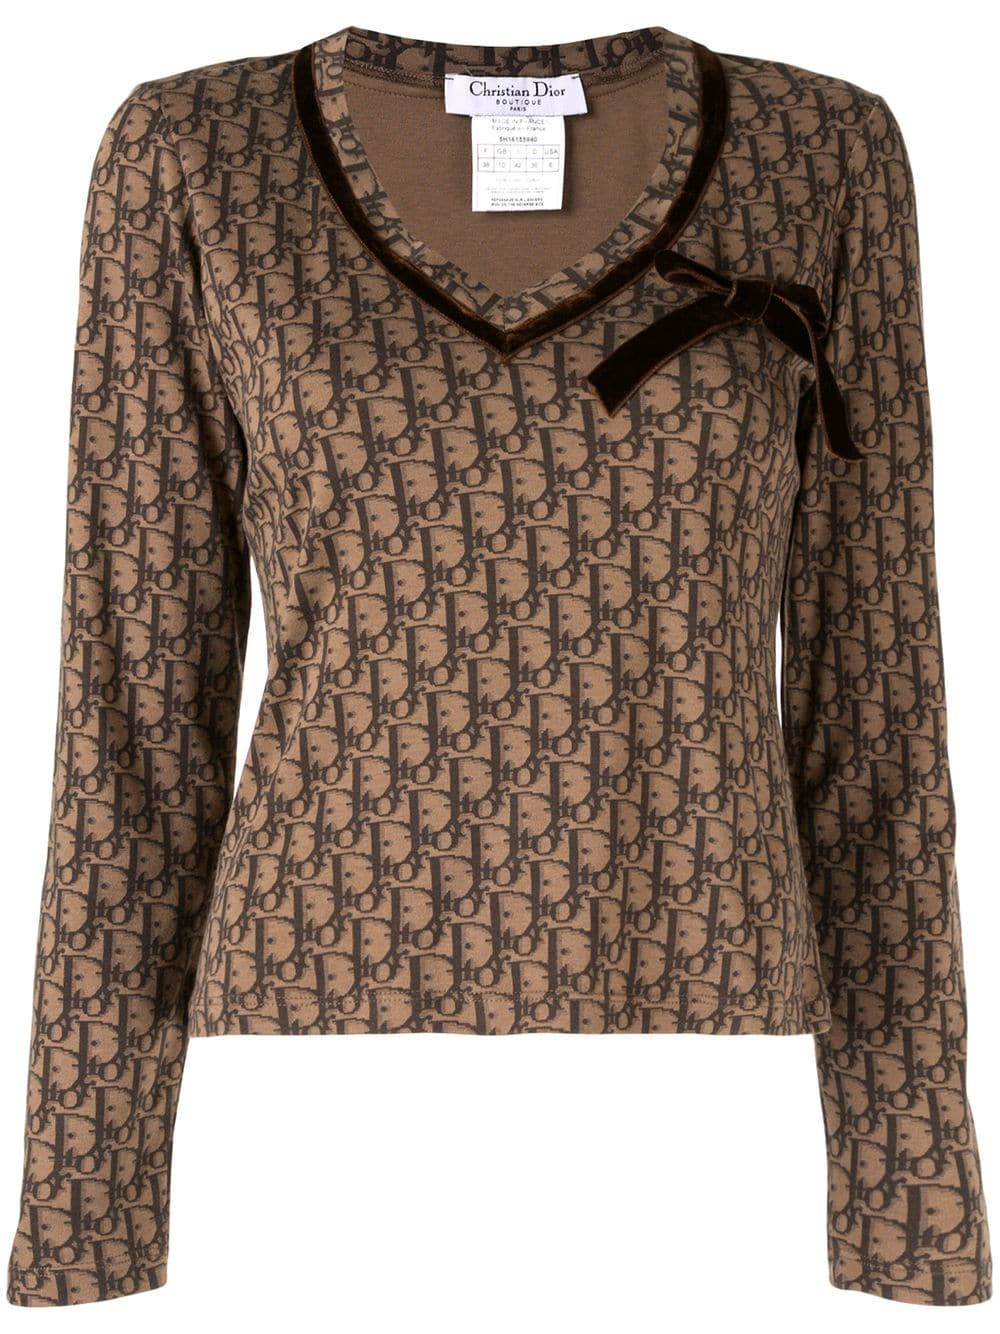 bbe5f770617e christian-dior-vintage -multi-patterned-top-brown-farfetch-com-photo.jpg 1550847184